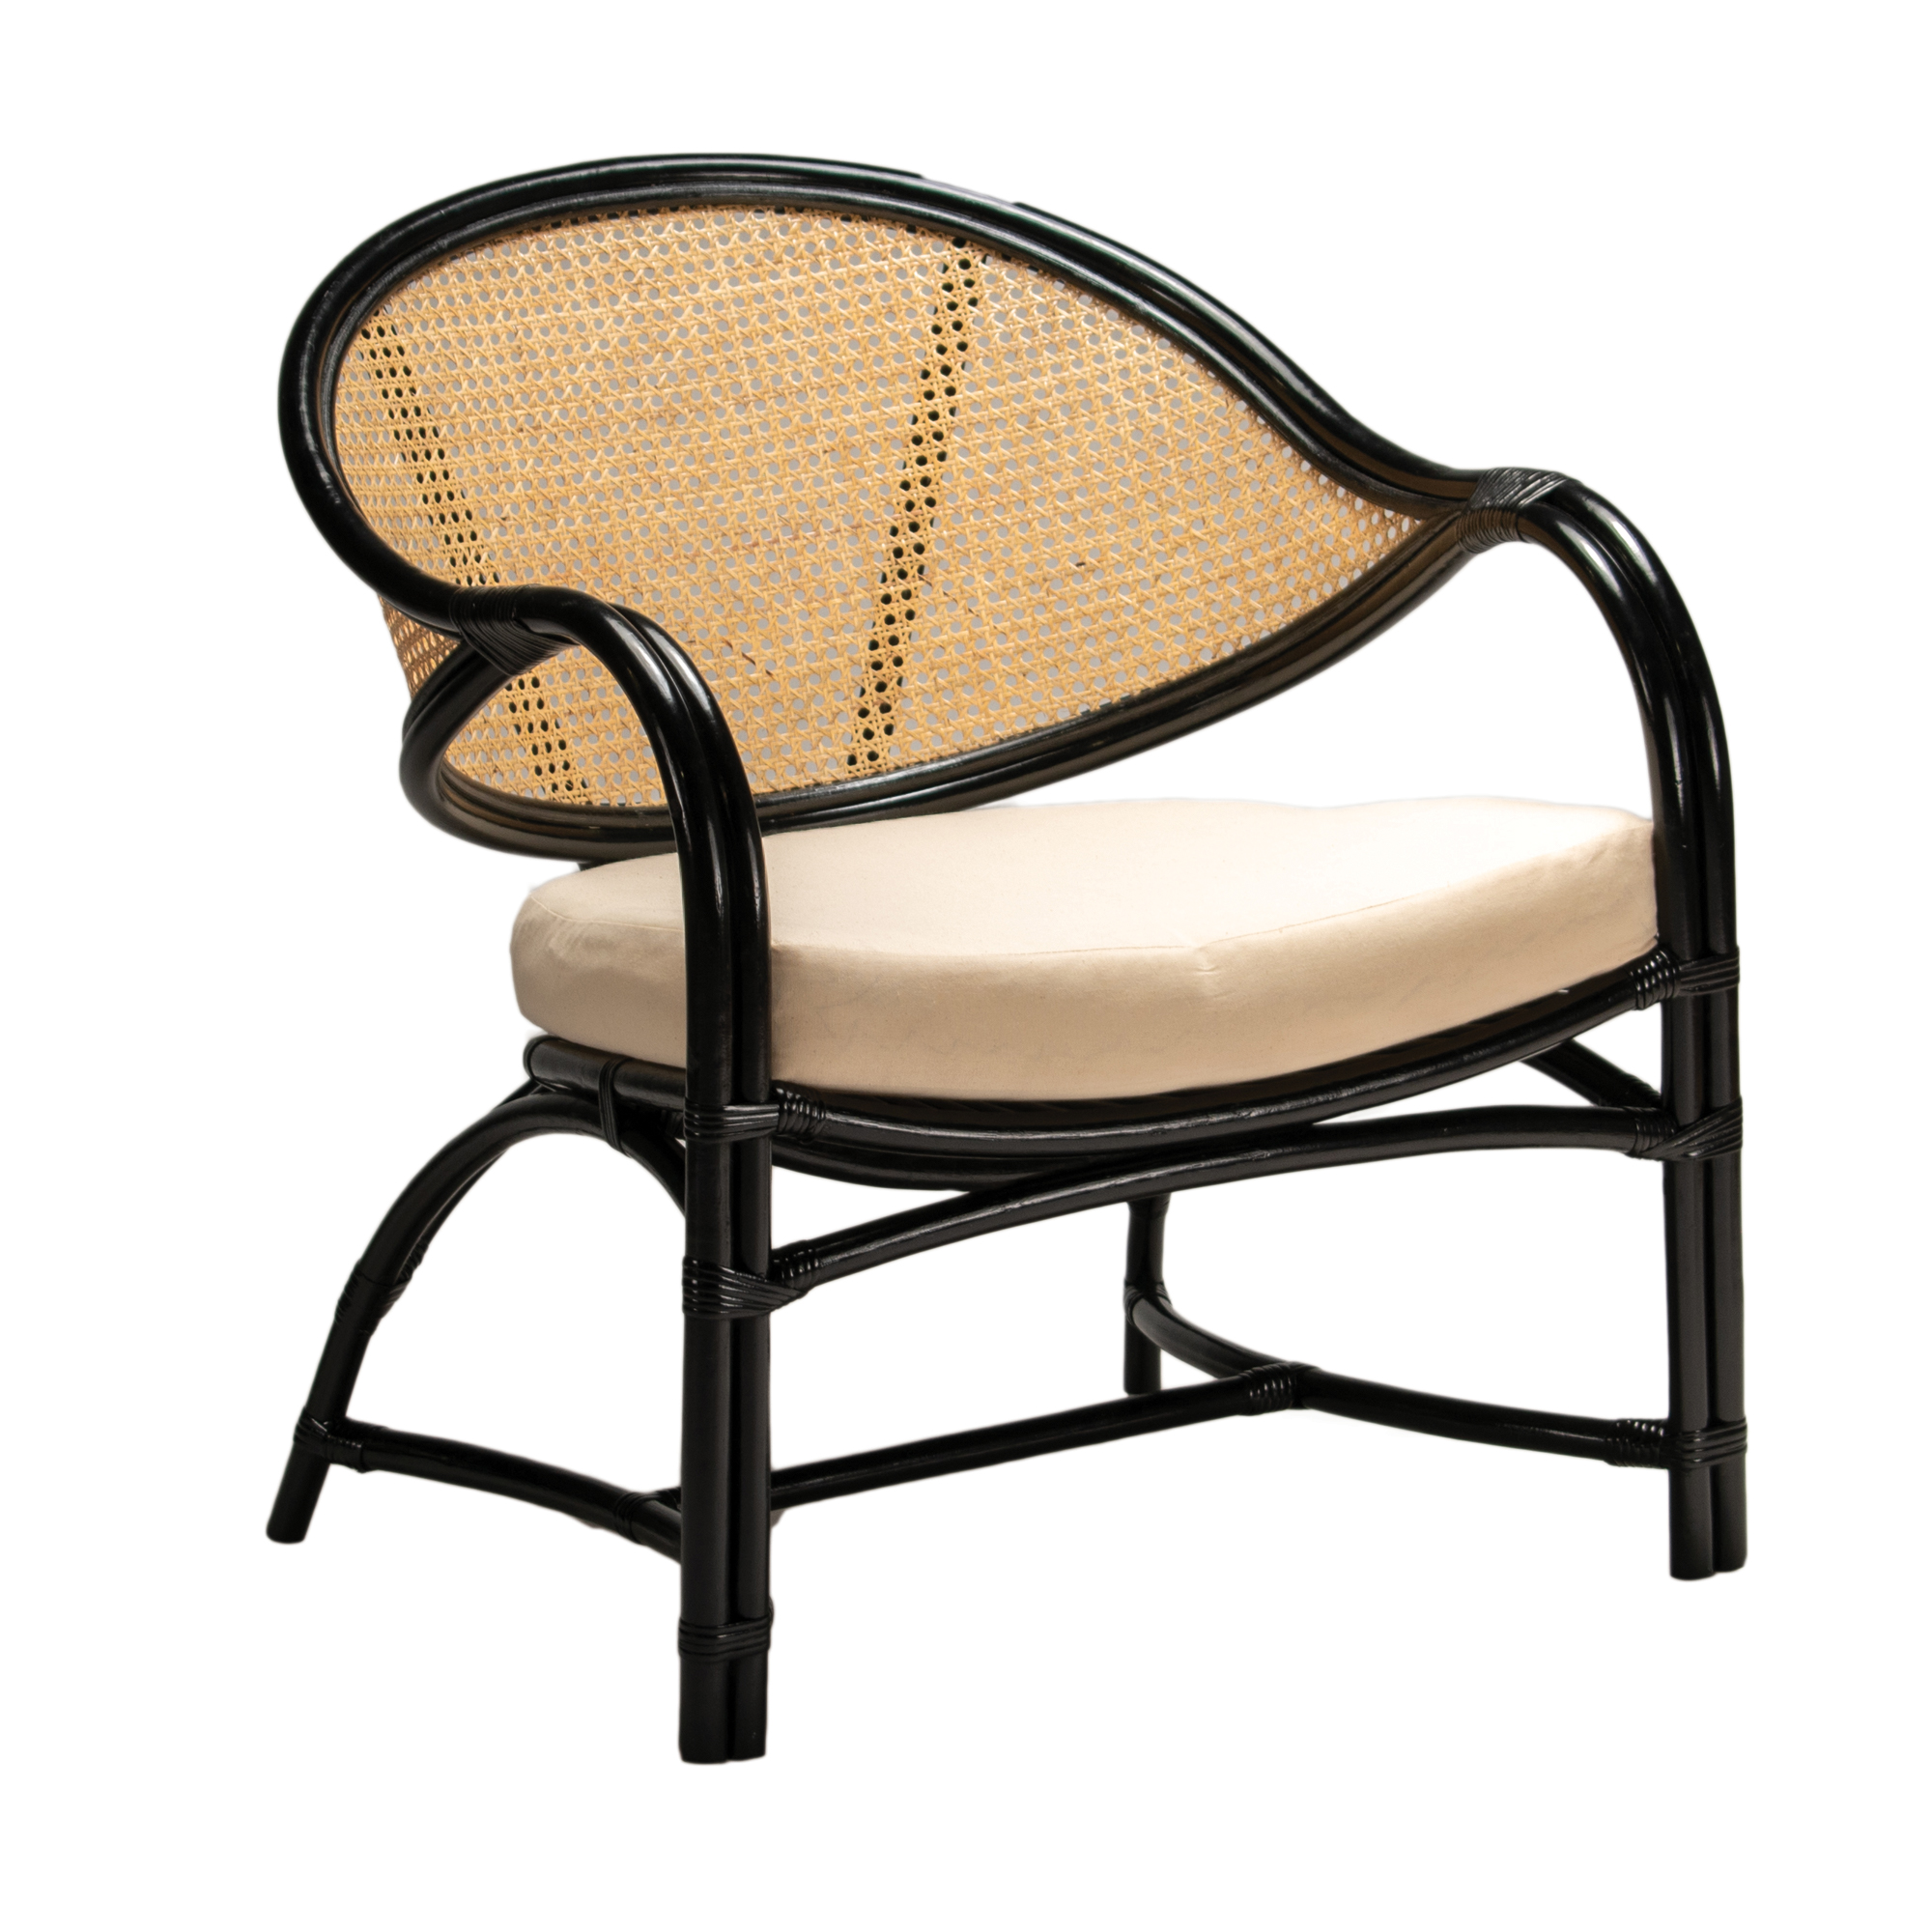 bel-air-armchair-black-and-natural